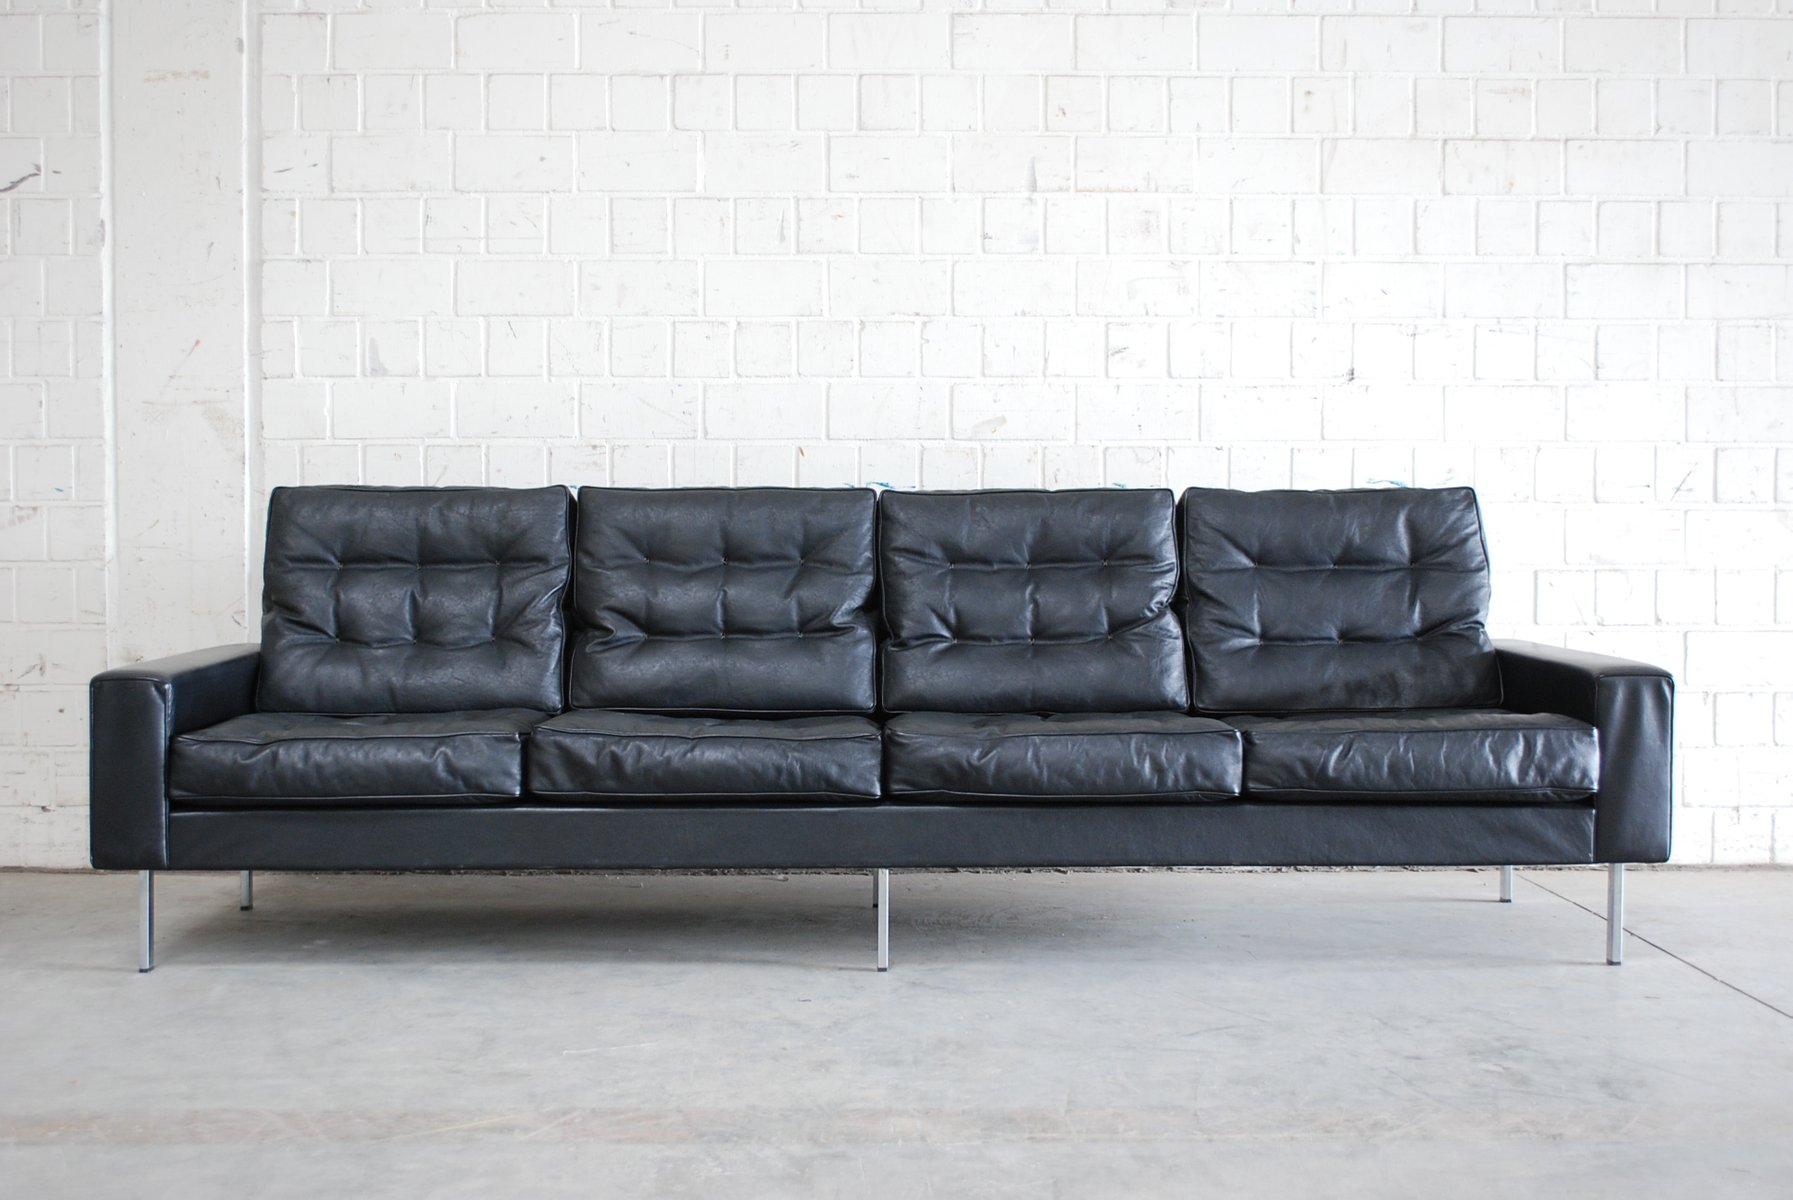 vintage black leather 4 seater sofa from de sede 1967 for. Black Bedroom Furniture Sets. Home Design Ideas